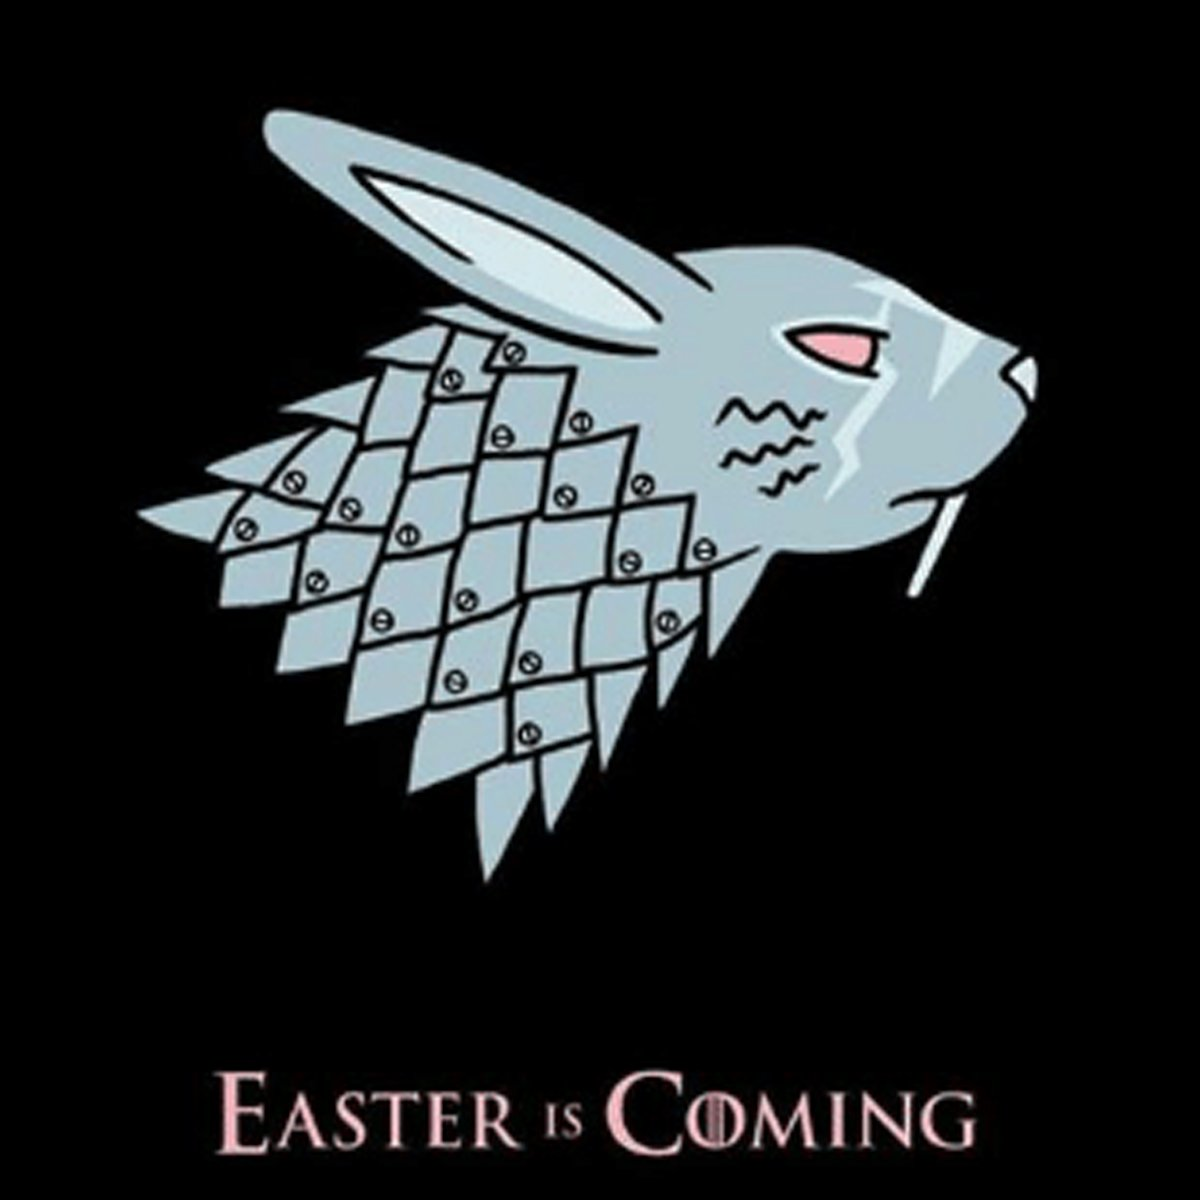 Easter is coming...  Learn more about the Mother of Dragons Speed Pass at CP2019 with stars Emilia Clarke and Nathalie Emmanuel and to purchase: https://t.co/srWCZLhwo4 https://t.co/DWaOZeBSUd